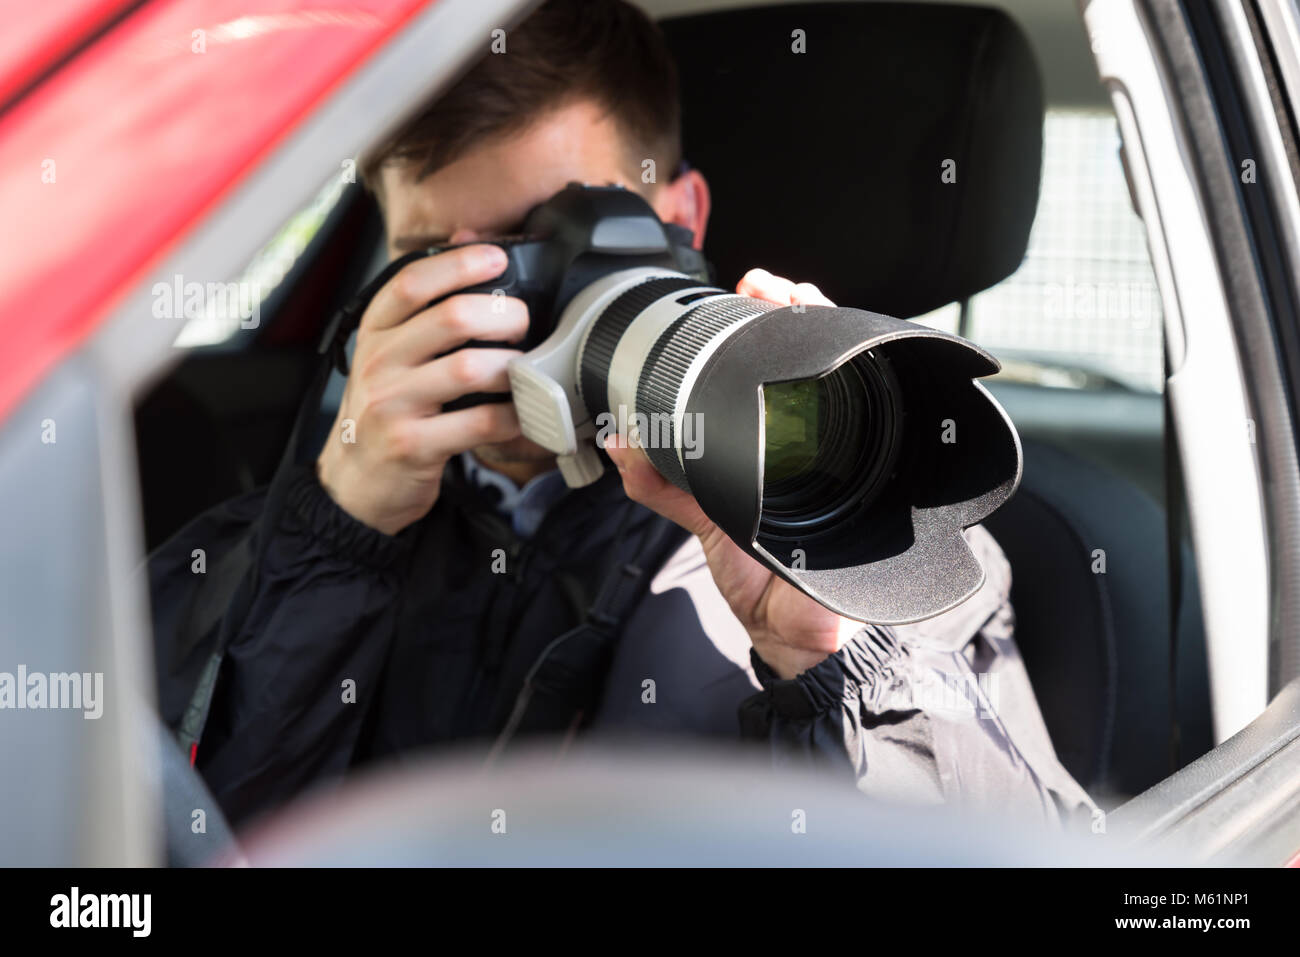 Side View Of A Private Detective Sitting Inside Car Photographing With Slr Camera - Stock Image